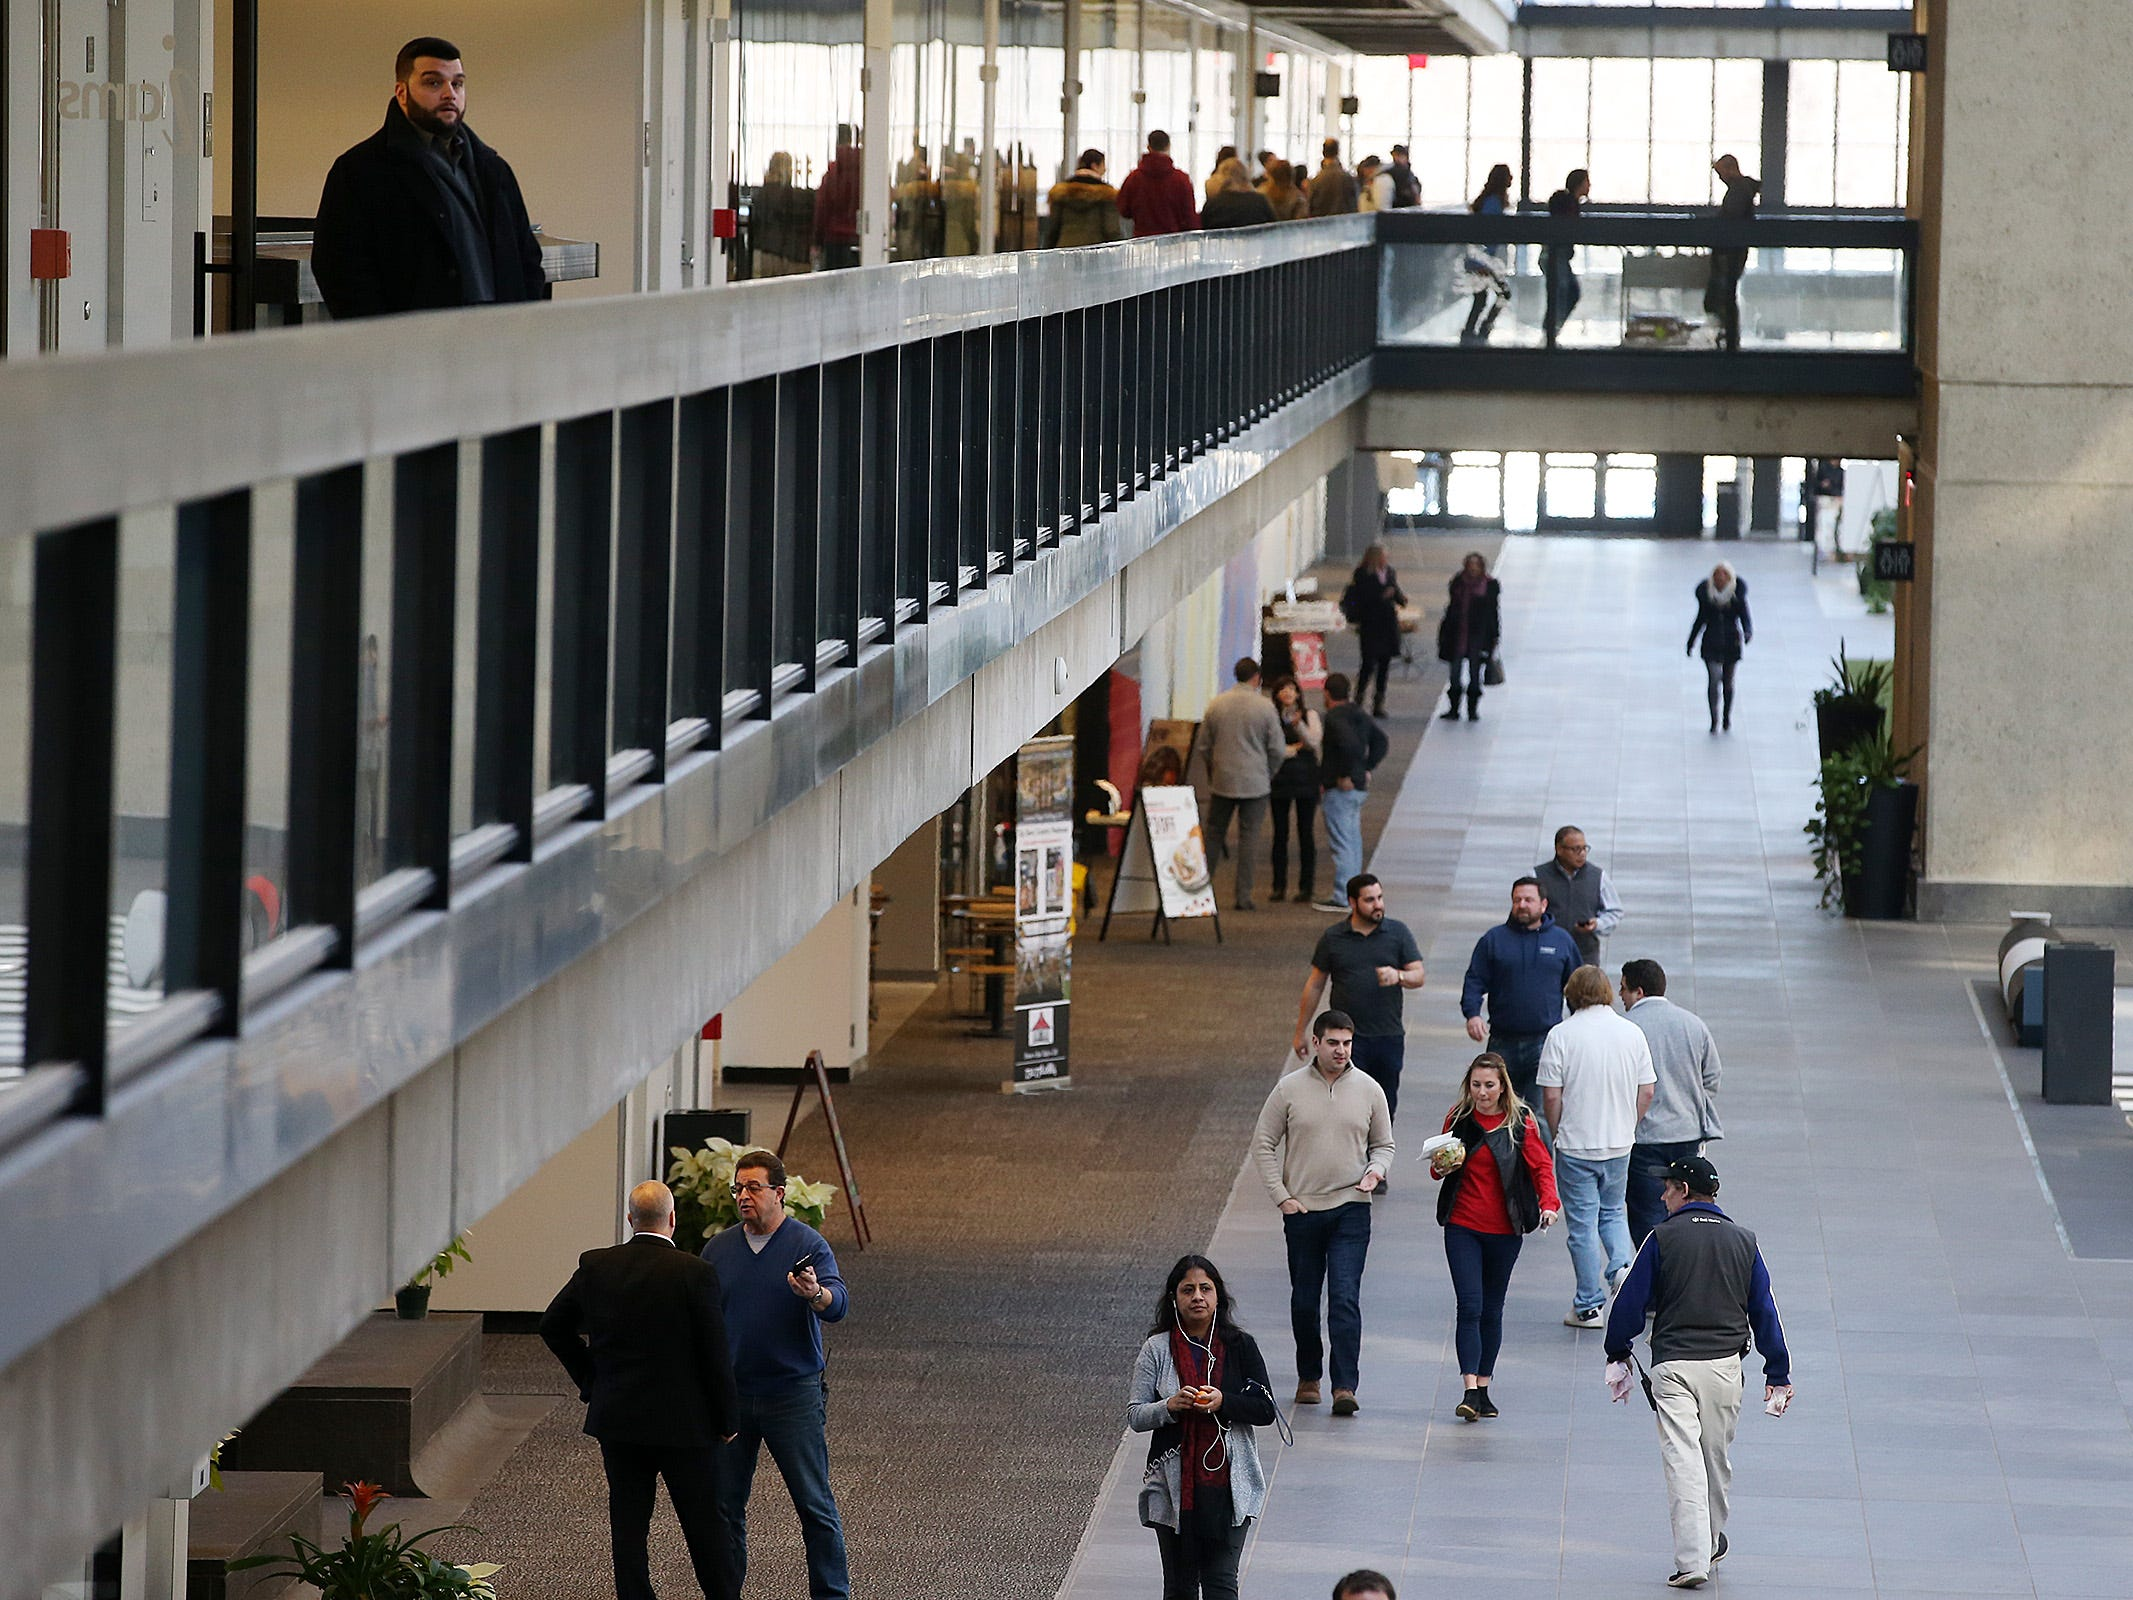 Employees and visitors walk the hallways and eat lunch in the open common space at Bell Works in Holmdel, NJ Thursday January 31, 2019. Bell Works versus Fort Monmouth. Who's winning? The Shore's two biggest redevelopment projects got underway at about the same time, but Bell Works has pulled far ahead in the race.